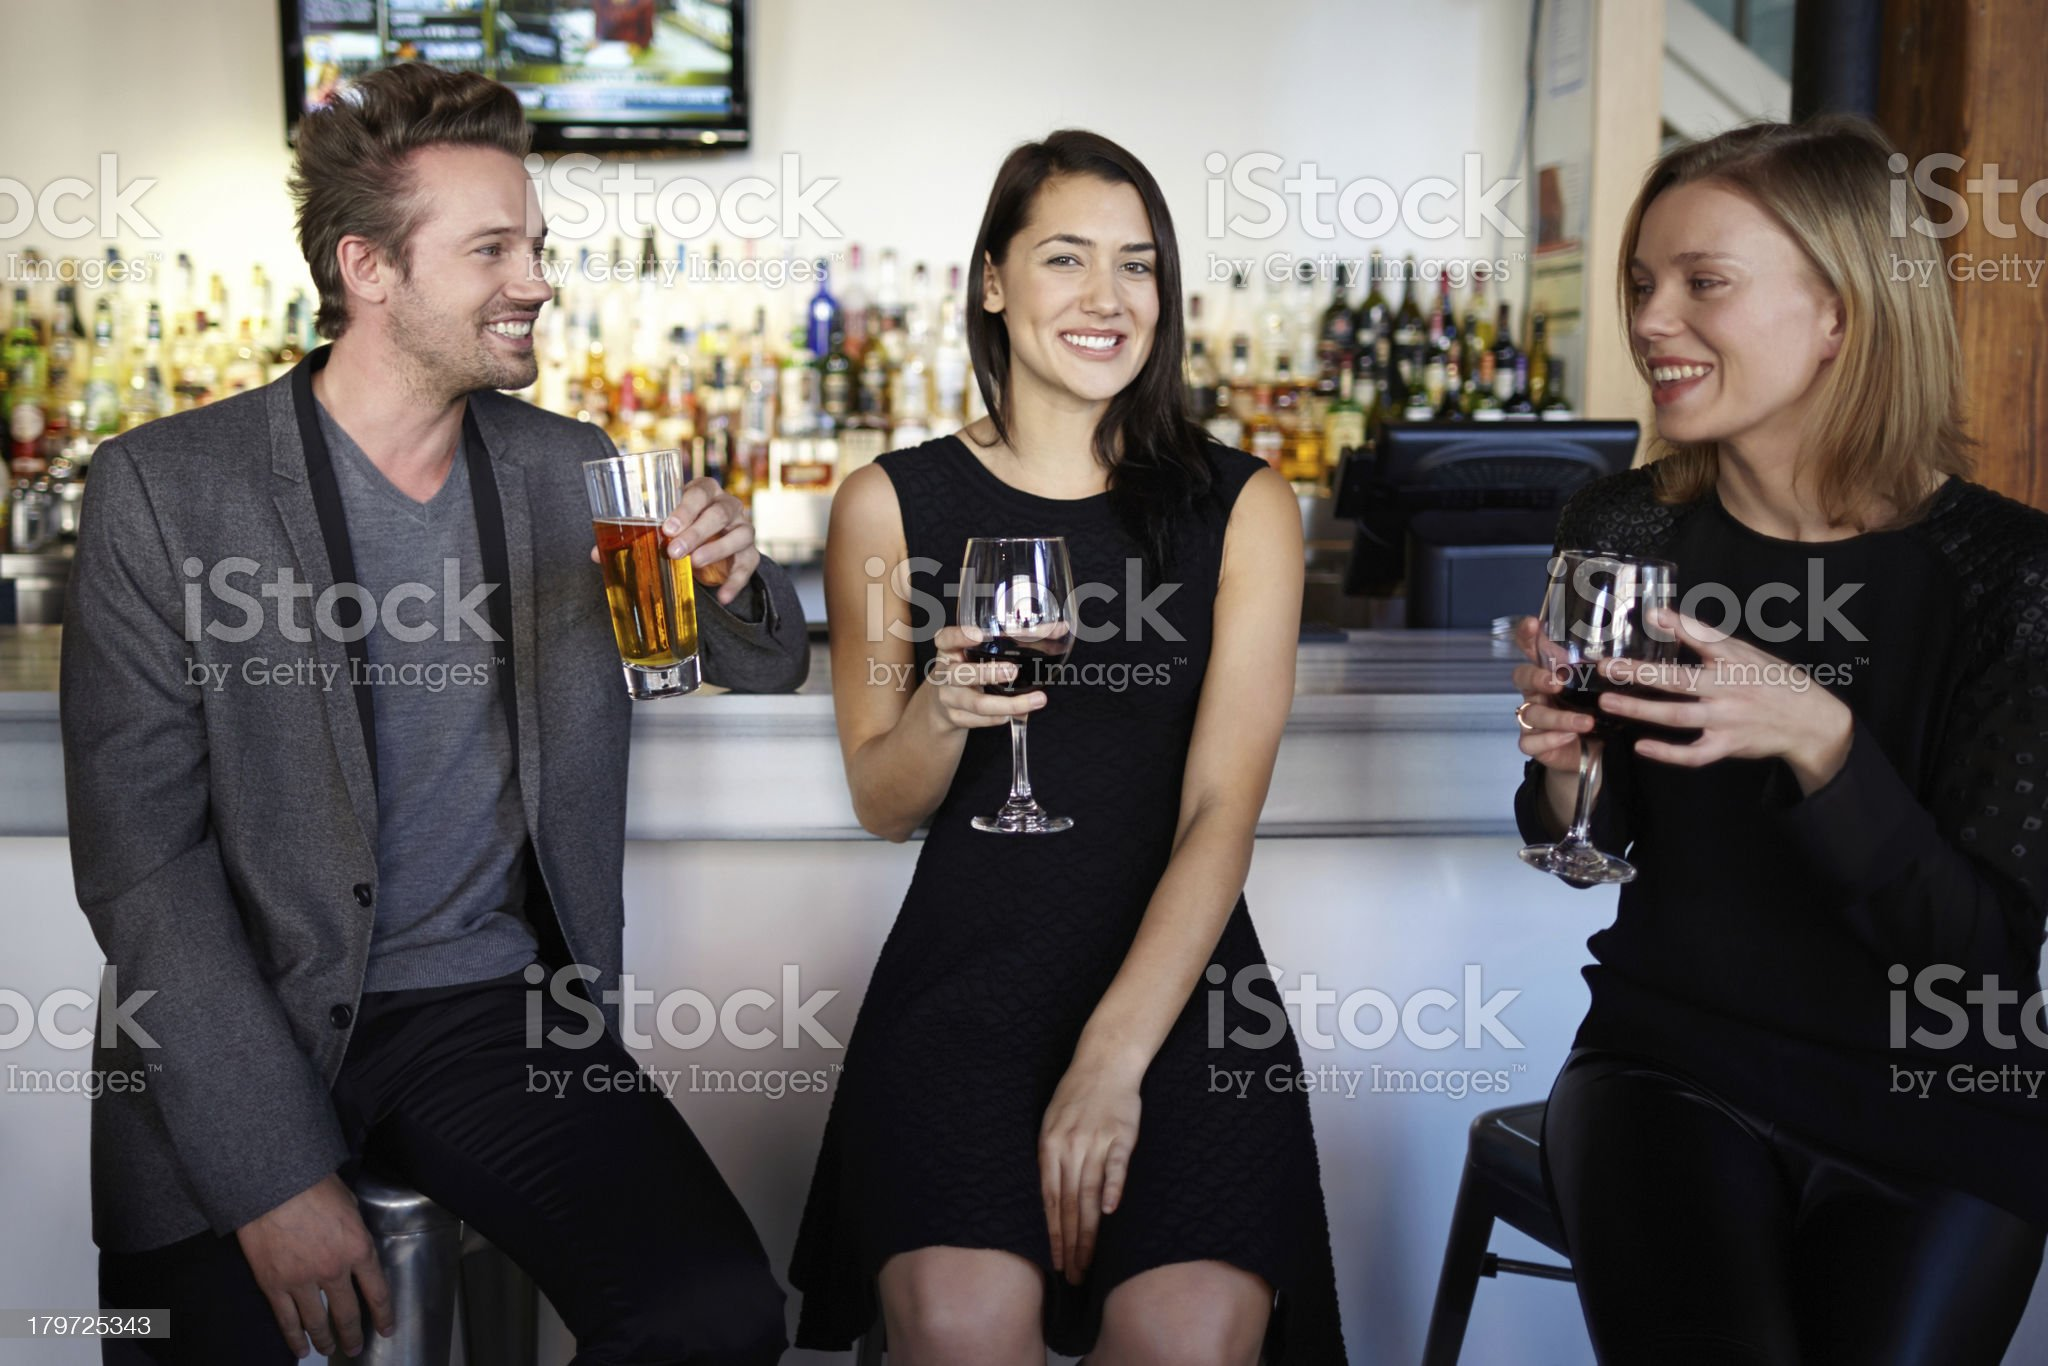 Three friends socializing and drinking at a bar counter smiling royalty-free stock photo